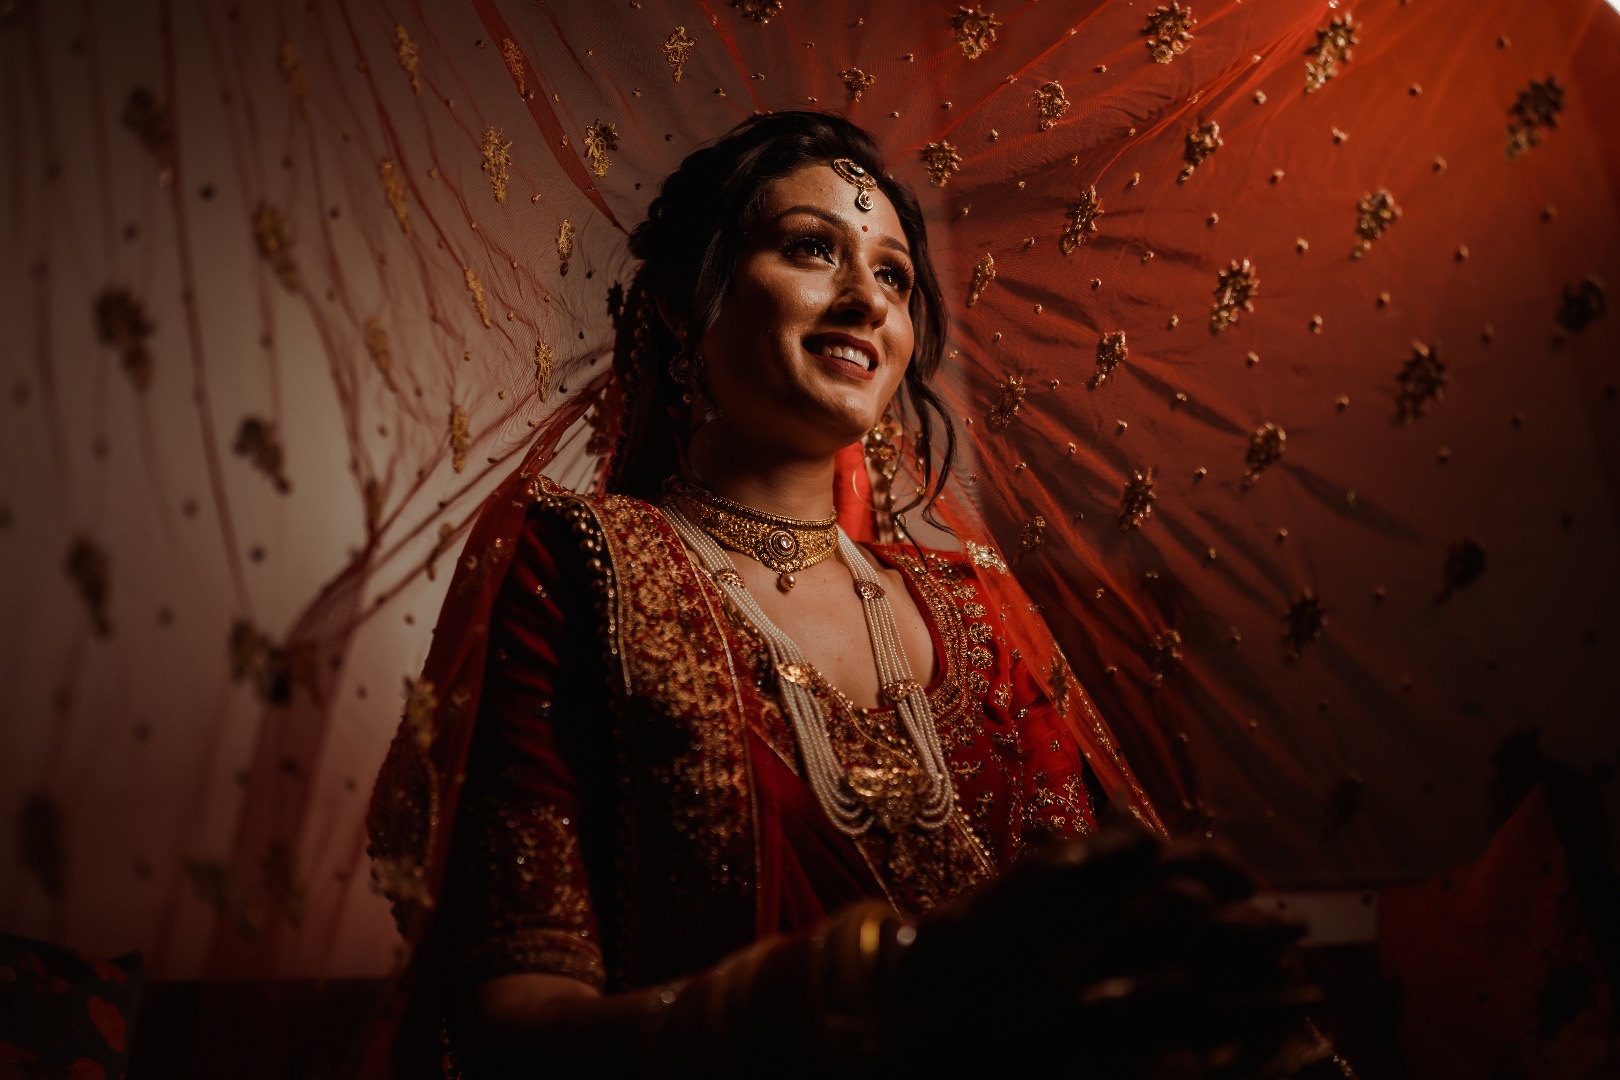 Beautiful capture of the bride in orange lehenga through the ghungat